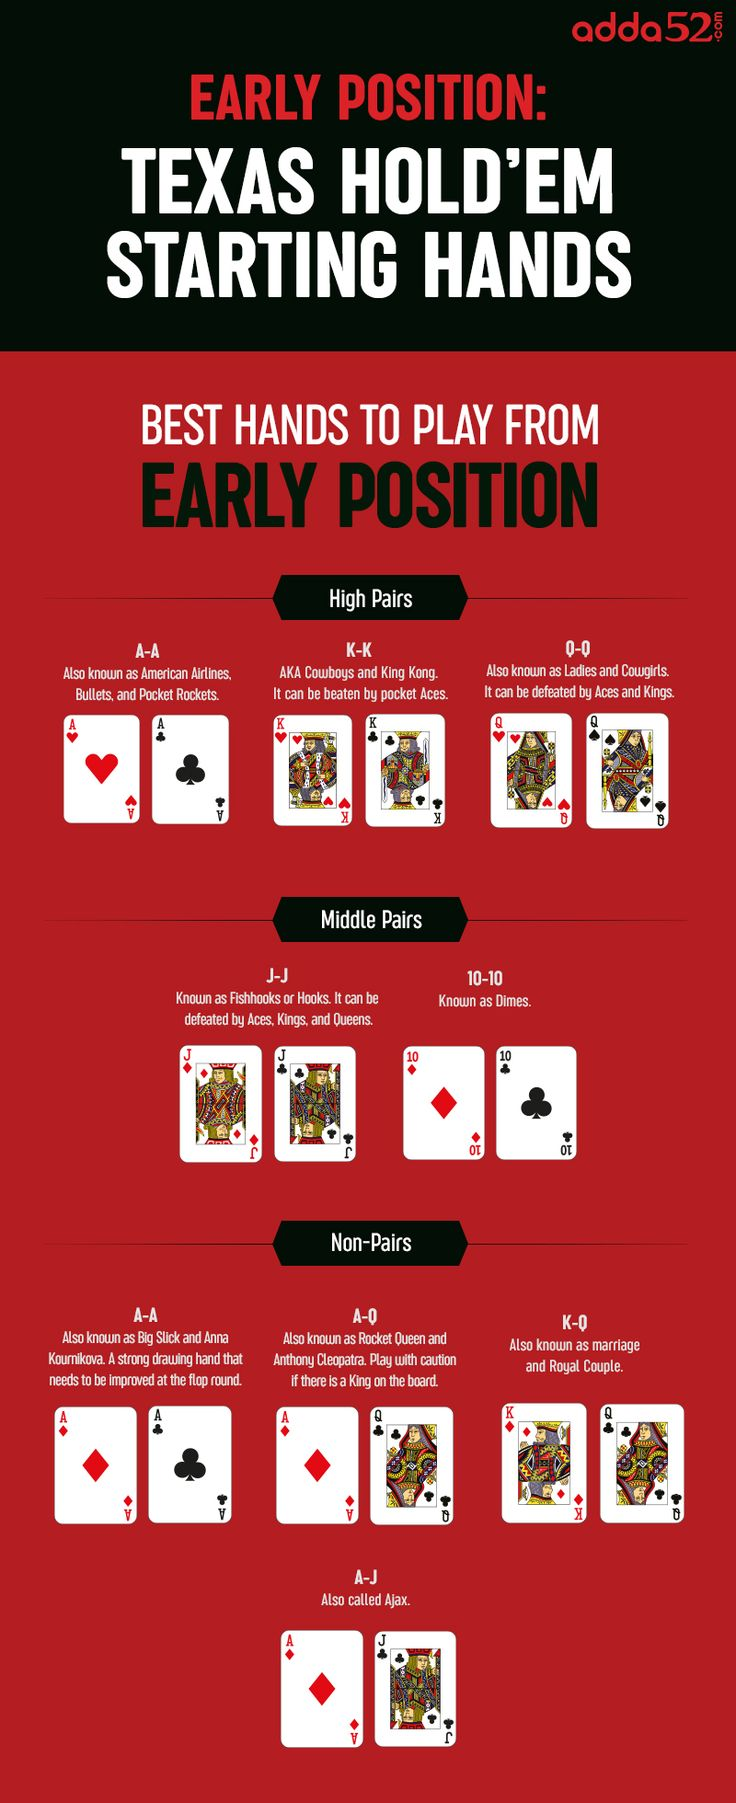 Early position texas holdem starting hands texas